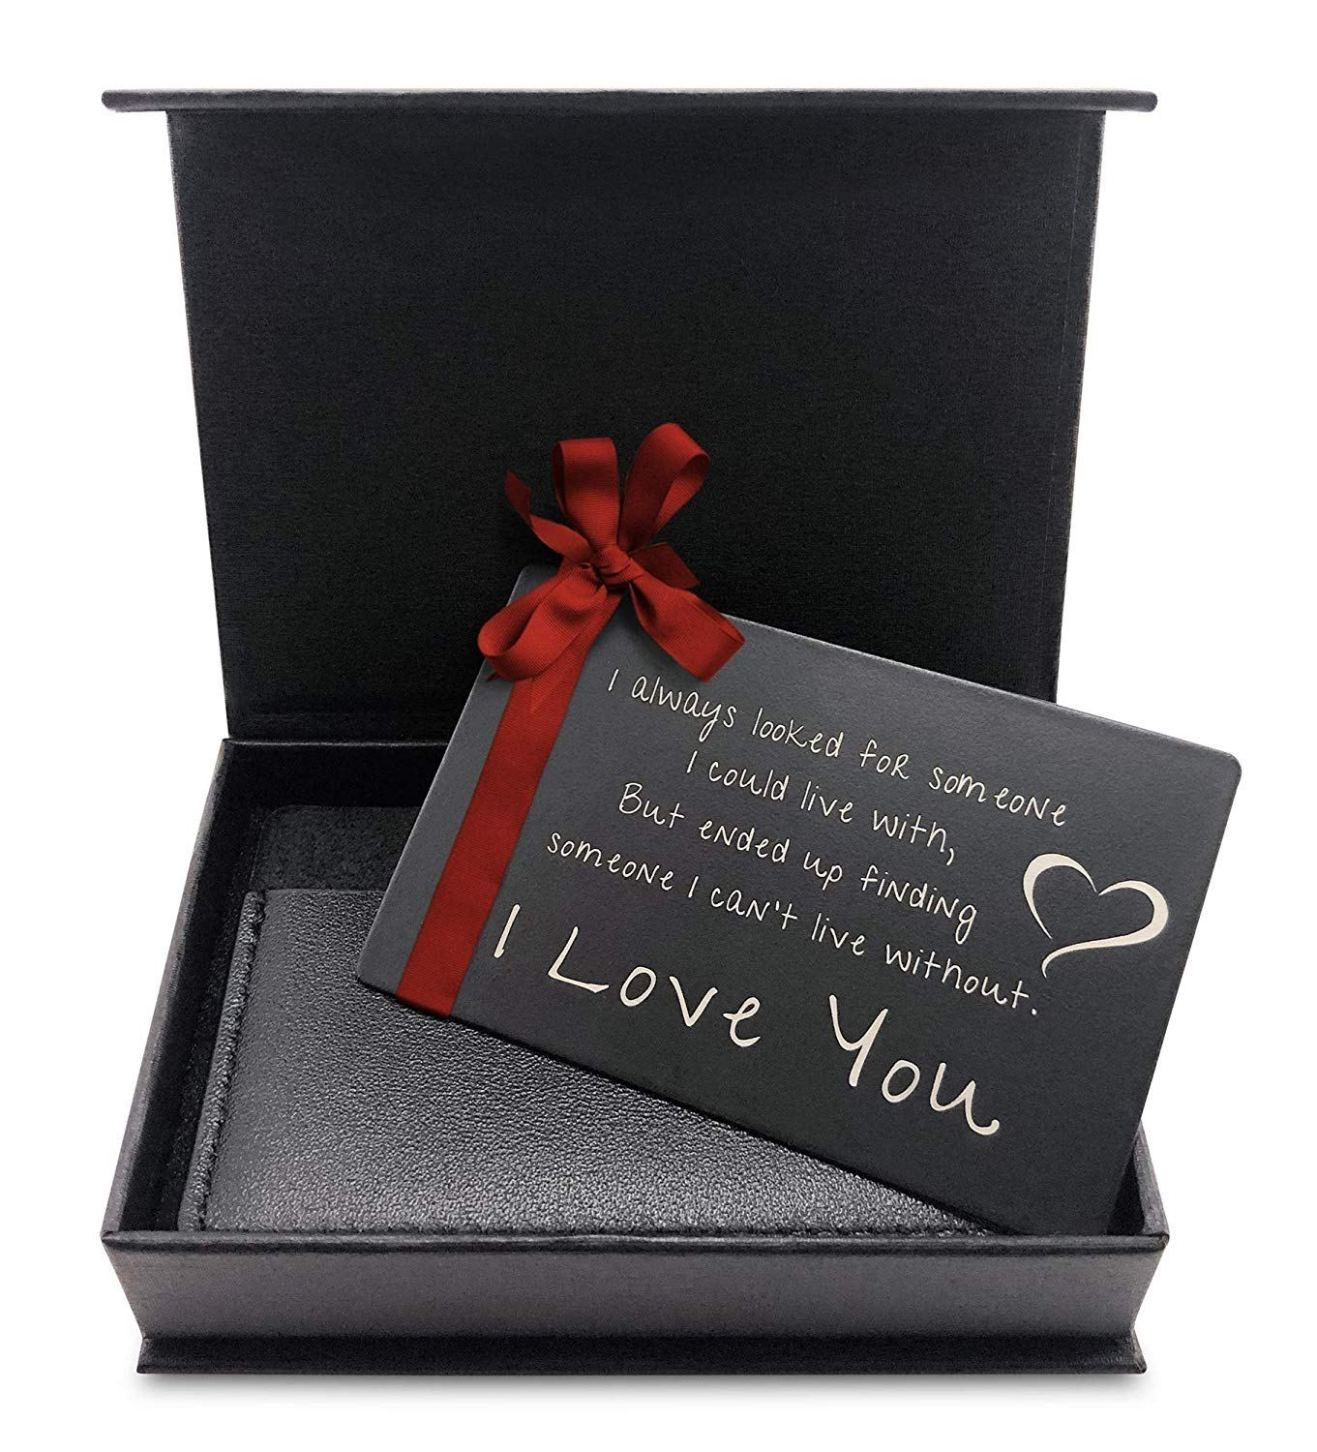 Romantic Gifts and Ideas for that Special Someone ...